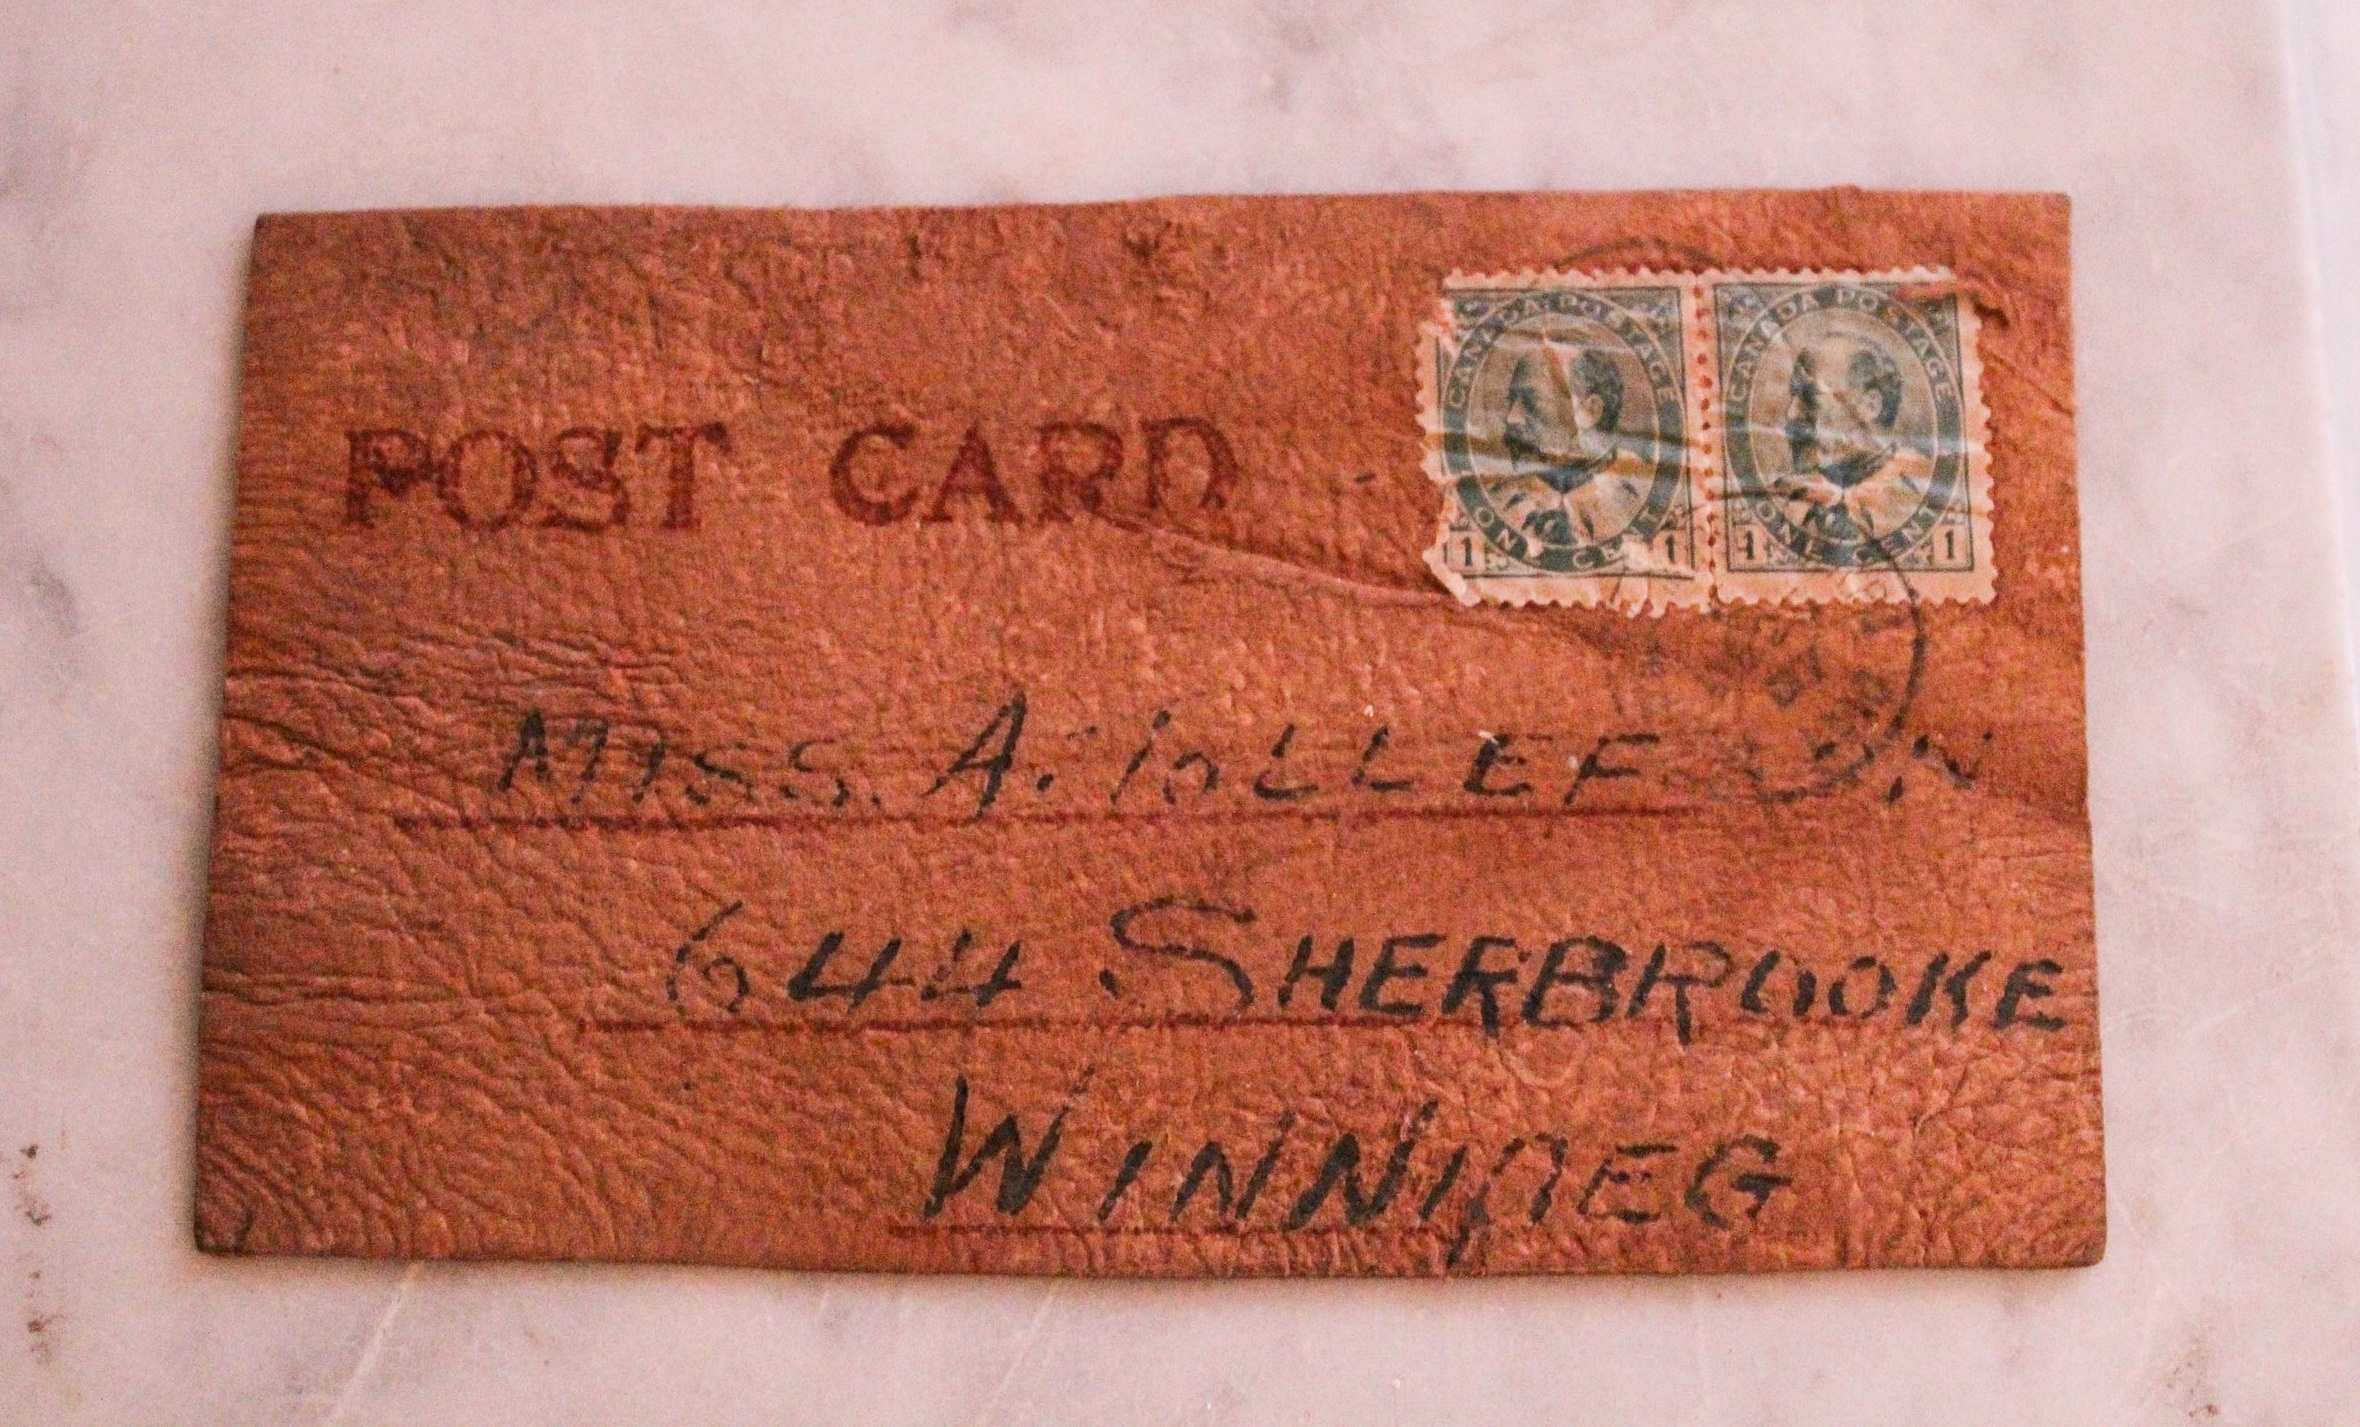 Reverse of postcard with the lucky lady's address (that's King Edward VII, Queen Victoria's son, on the stamps).